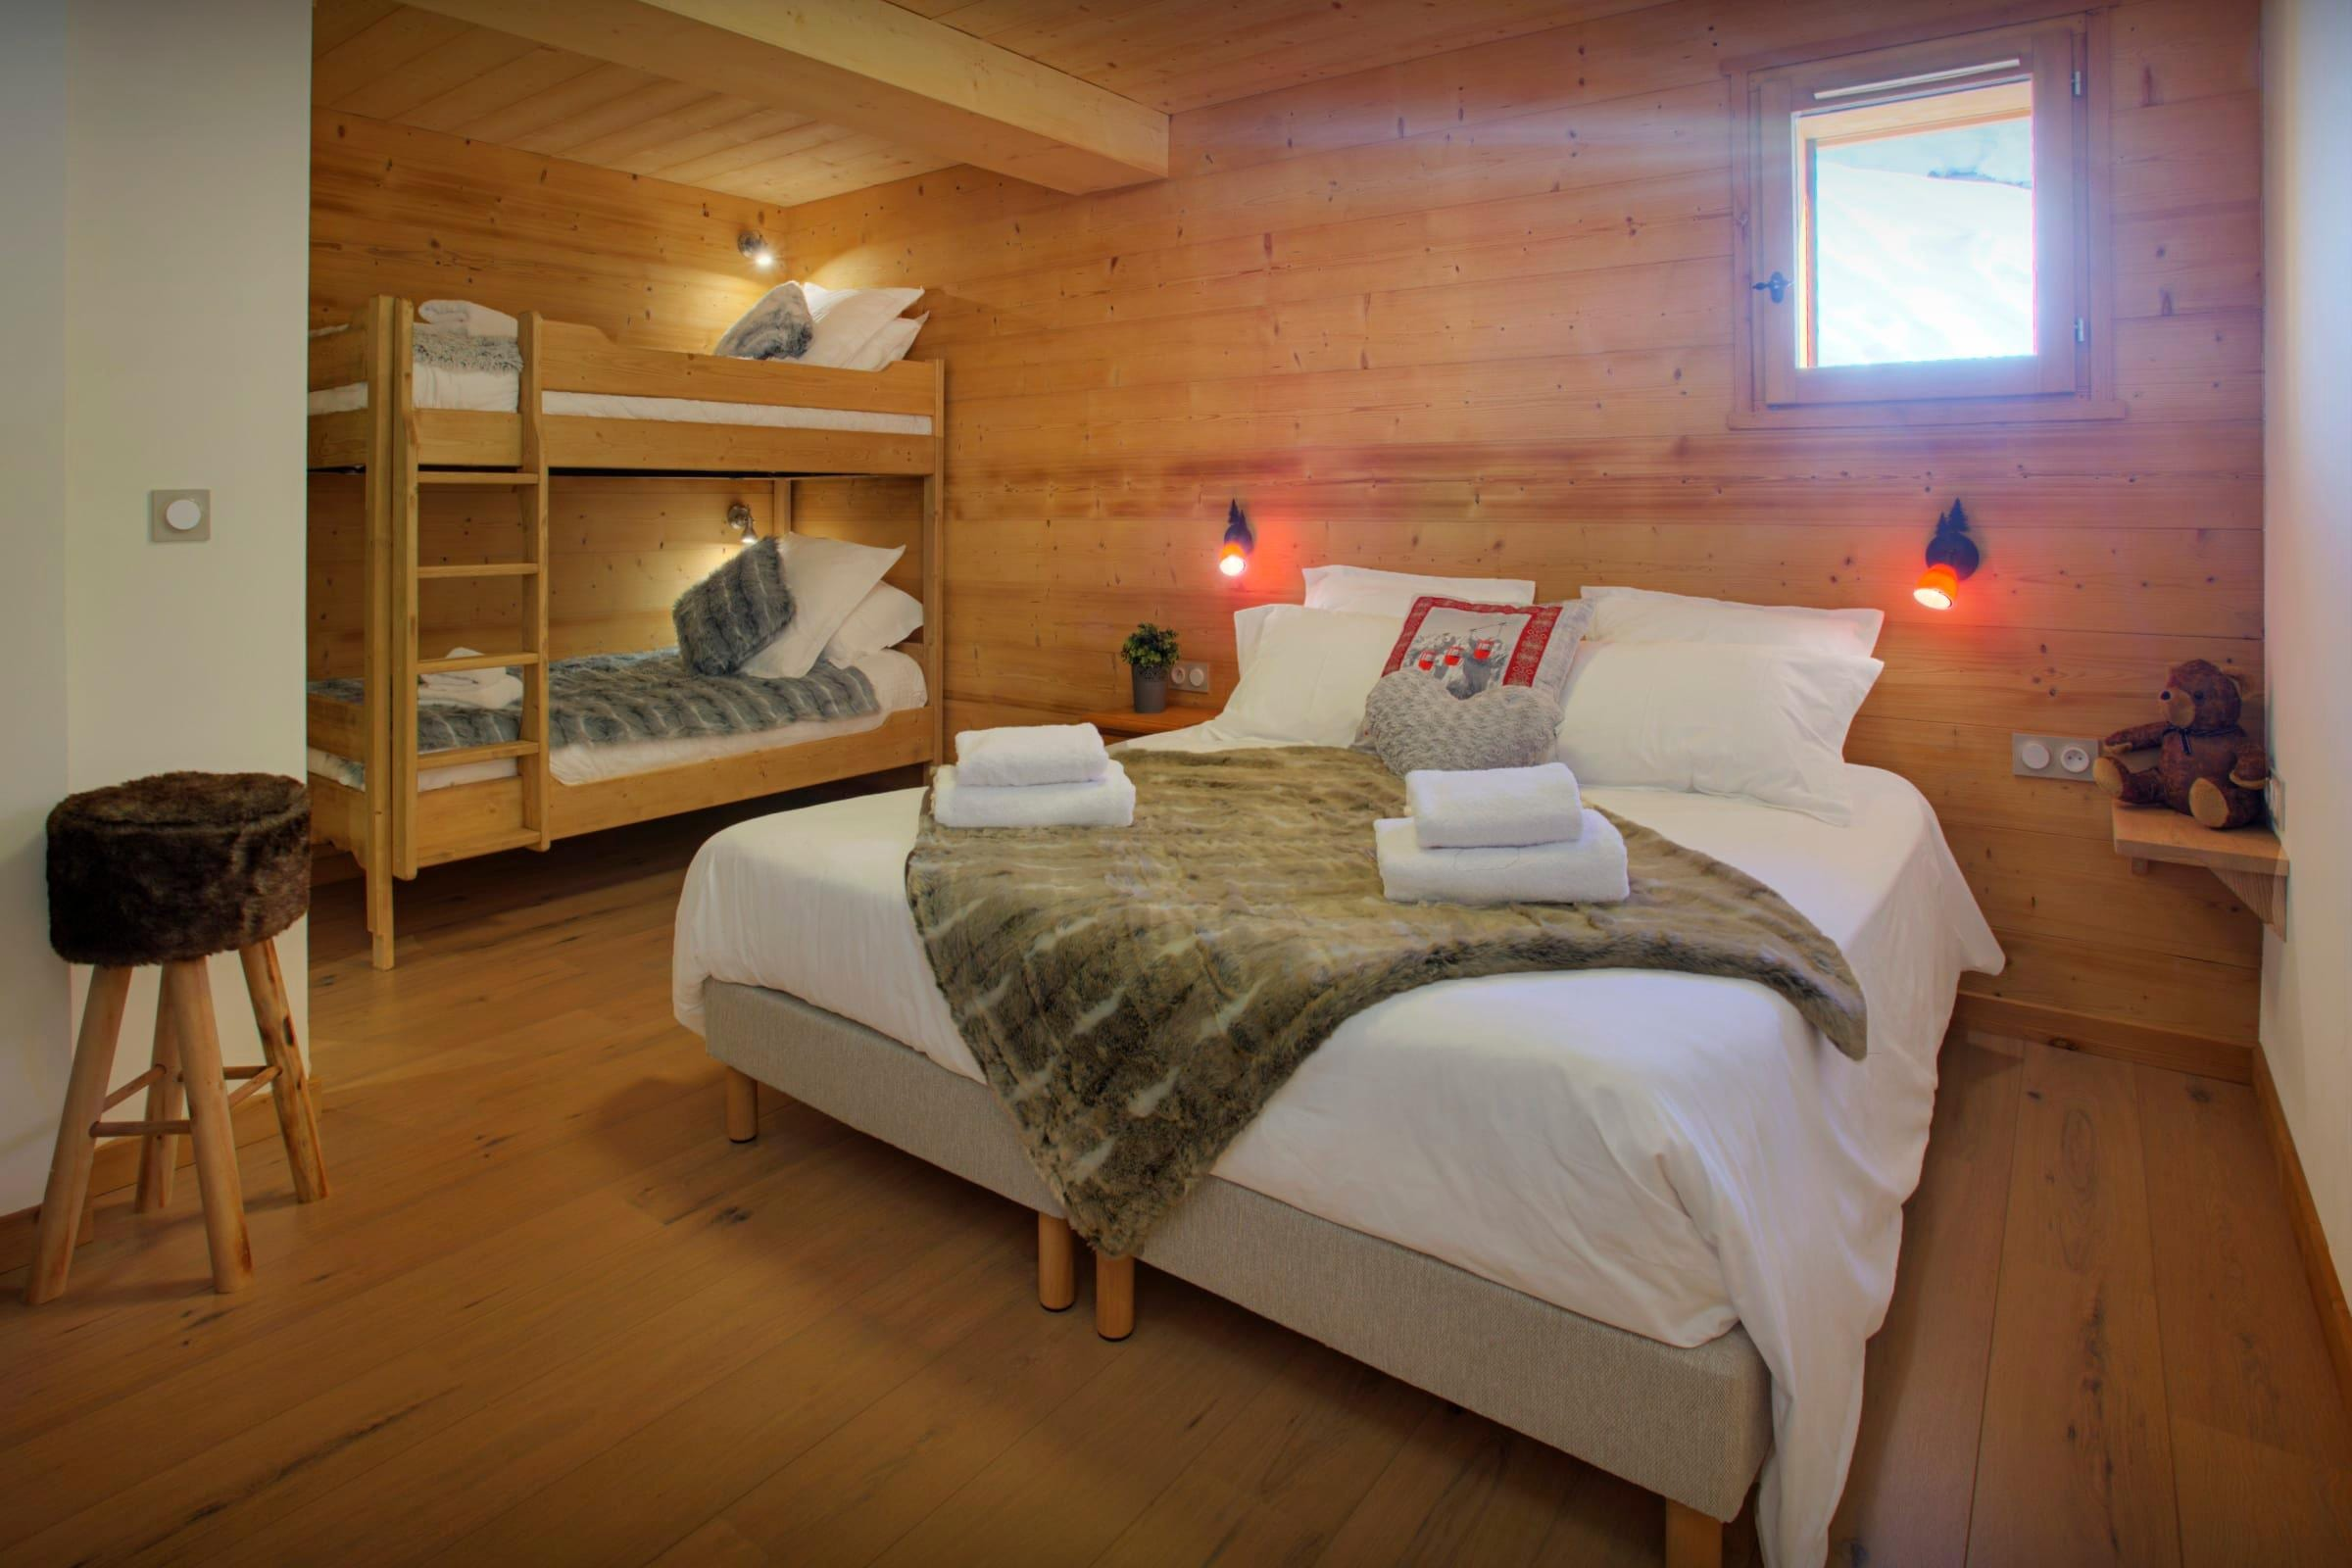 Property Image 2 - Contemporary Chalet With Stylish Sauna